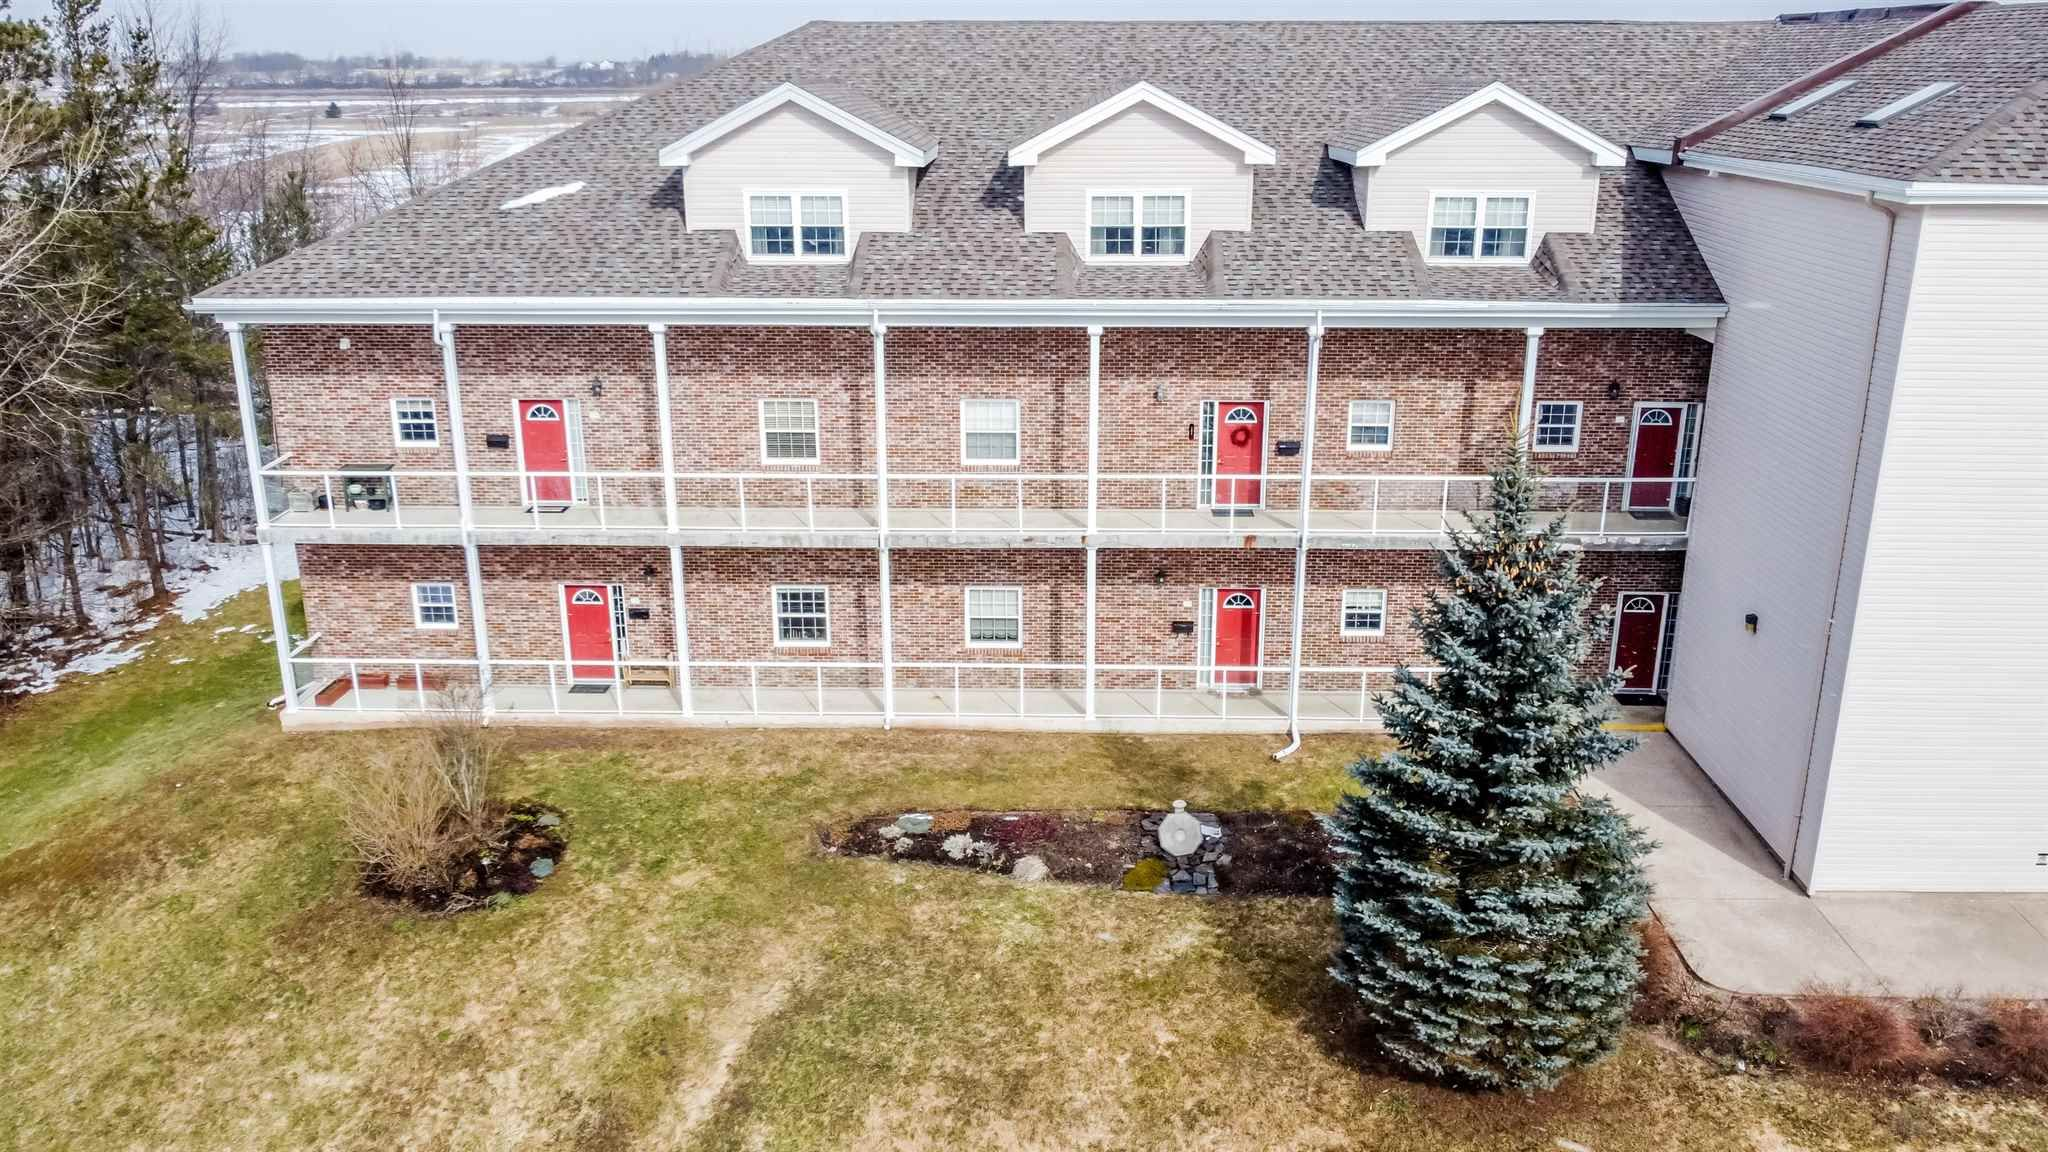 Main Photo: 106 71 Chambers Close in Wolfville: 404-Kings County Residential for sale (Annapolis Valley)  : MLS®# 202104128